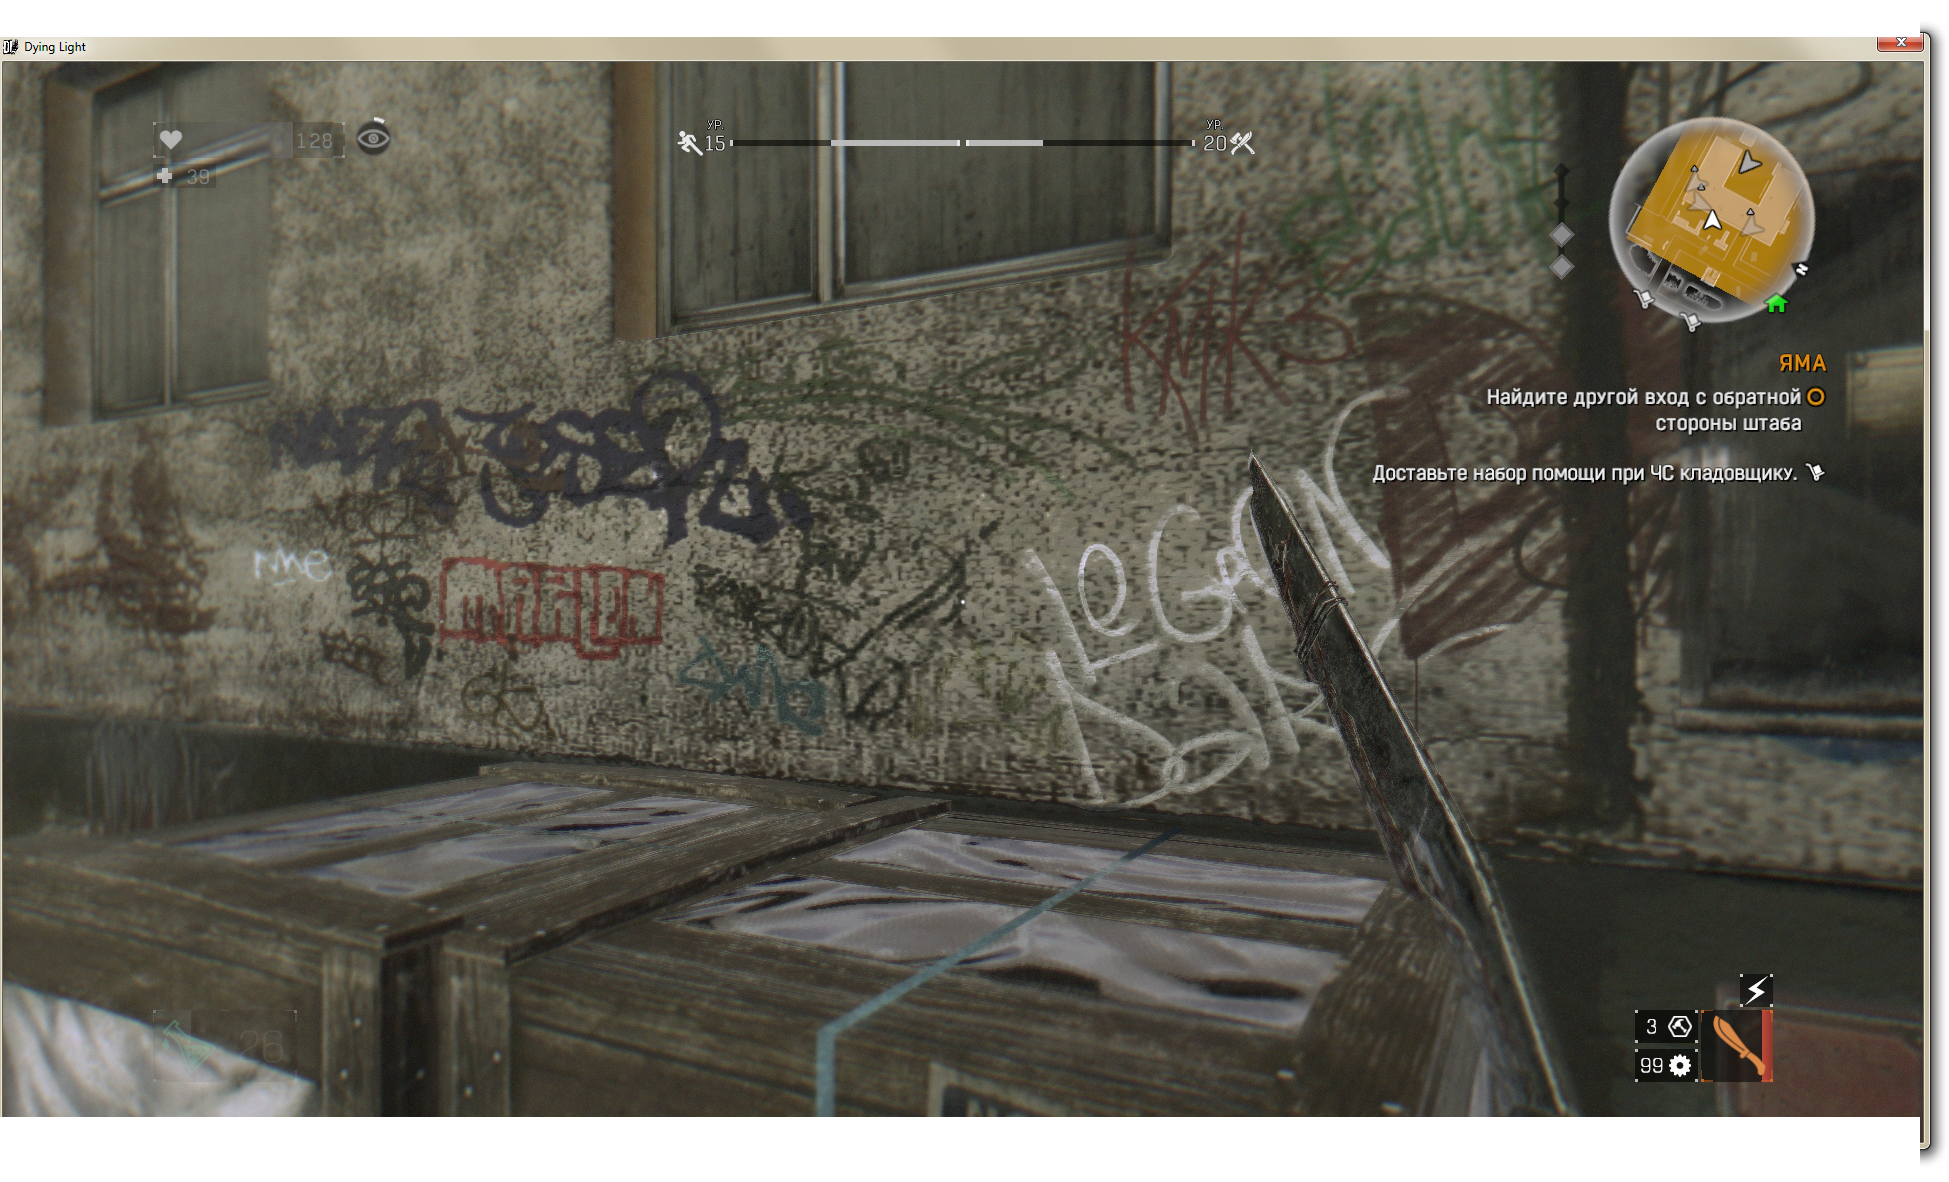 2015-02-04 02-39-50 Dying Light (inactive)